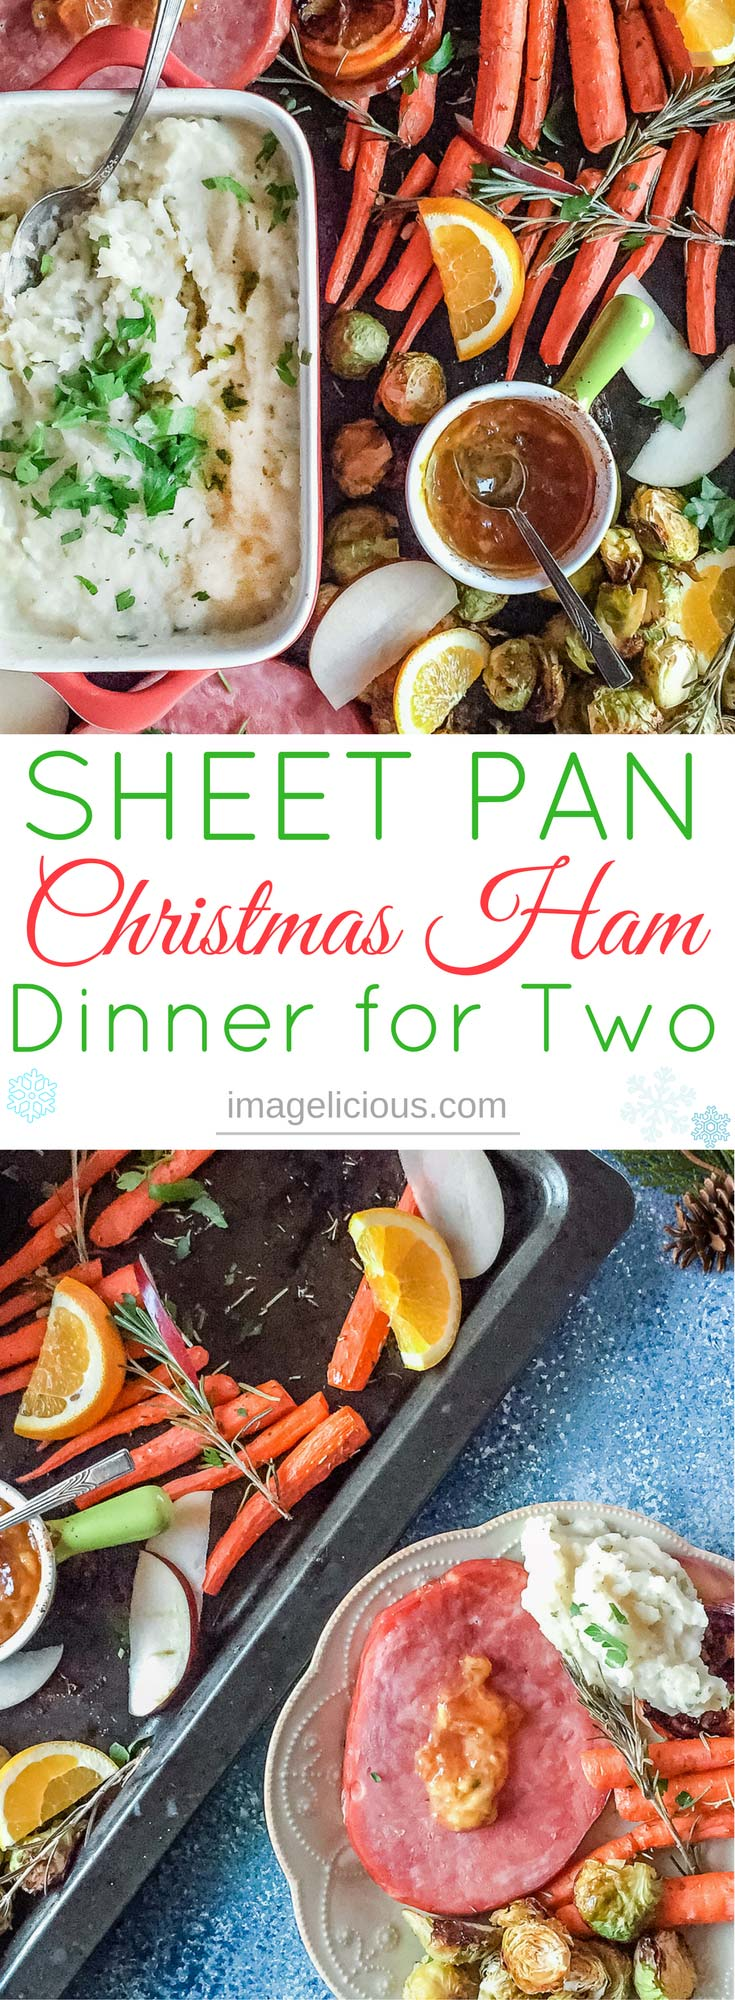 This Sheet Pan Christmas Ham Dinner For Two is made in just one hour from start to finish. Ham steaks, delicious apple sauce, carrots, Brussels sprouts, and even mashed potatoes are made in the oven on one sheet pan. Delicious, festive, and easy | Imagelicious #sheetpan #sheetpanmeals #sheetpandinner #christmasdinner #christmasham #christmas #hamdinner #onehourdinner